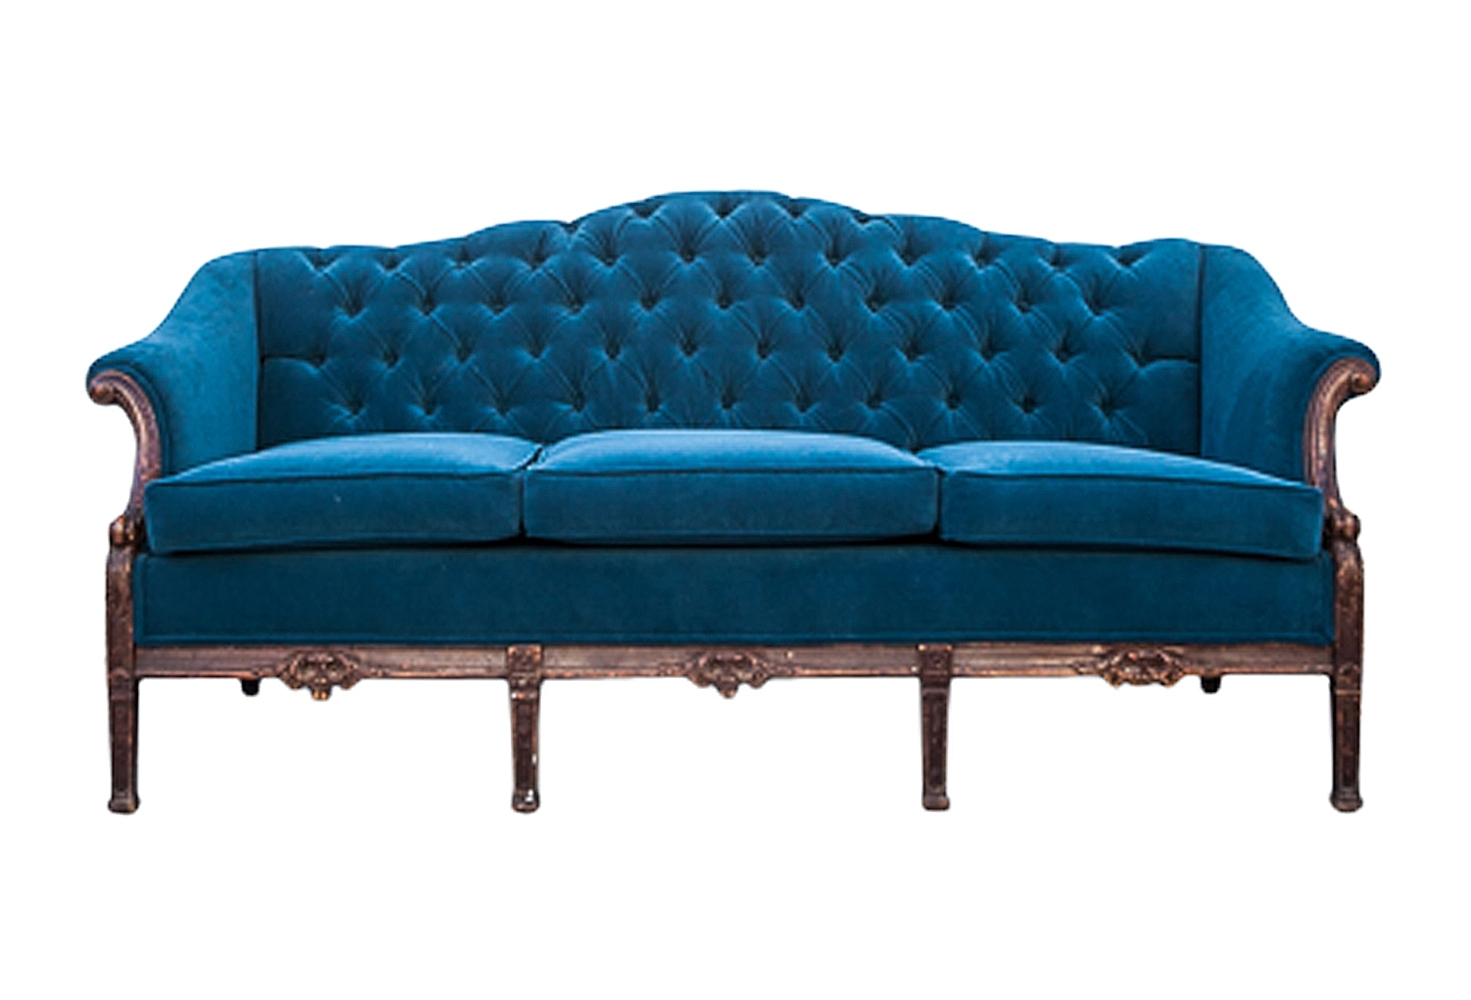 Omero Home With Vintage Sofas (View 9 of 15)